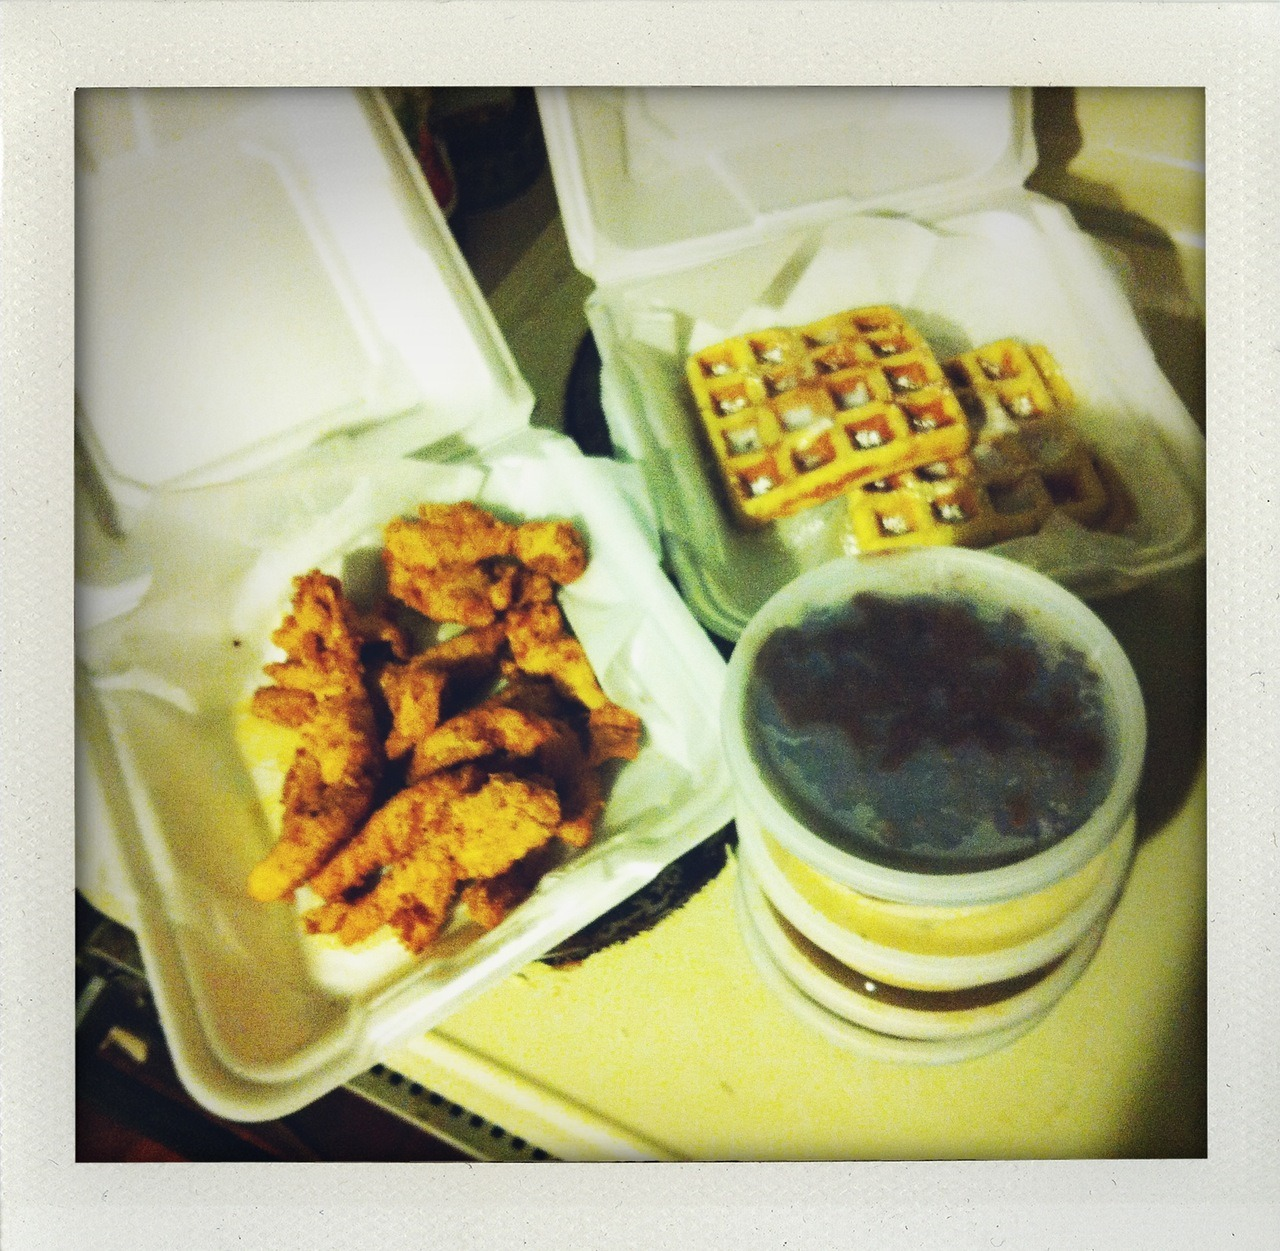 chicken strips and waffles and all the sides (4) from mack and dubs.  sadly they are facing some kind of suspected arson damage right now and have been closed for a week. they are the best! best side was the red beans and rice but they were all good.